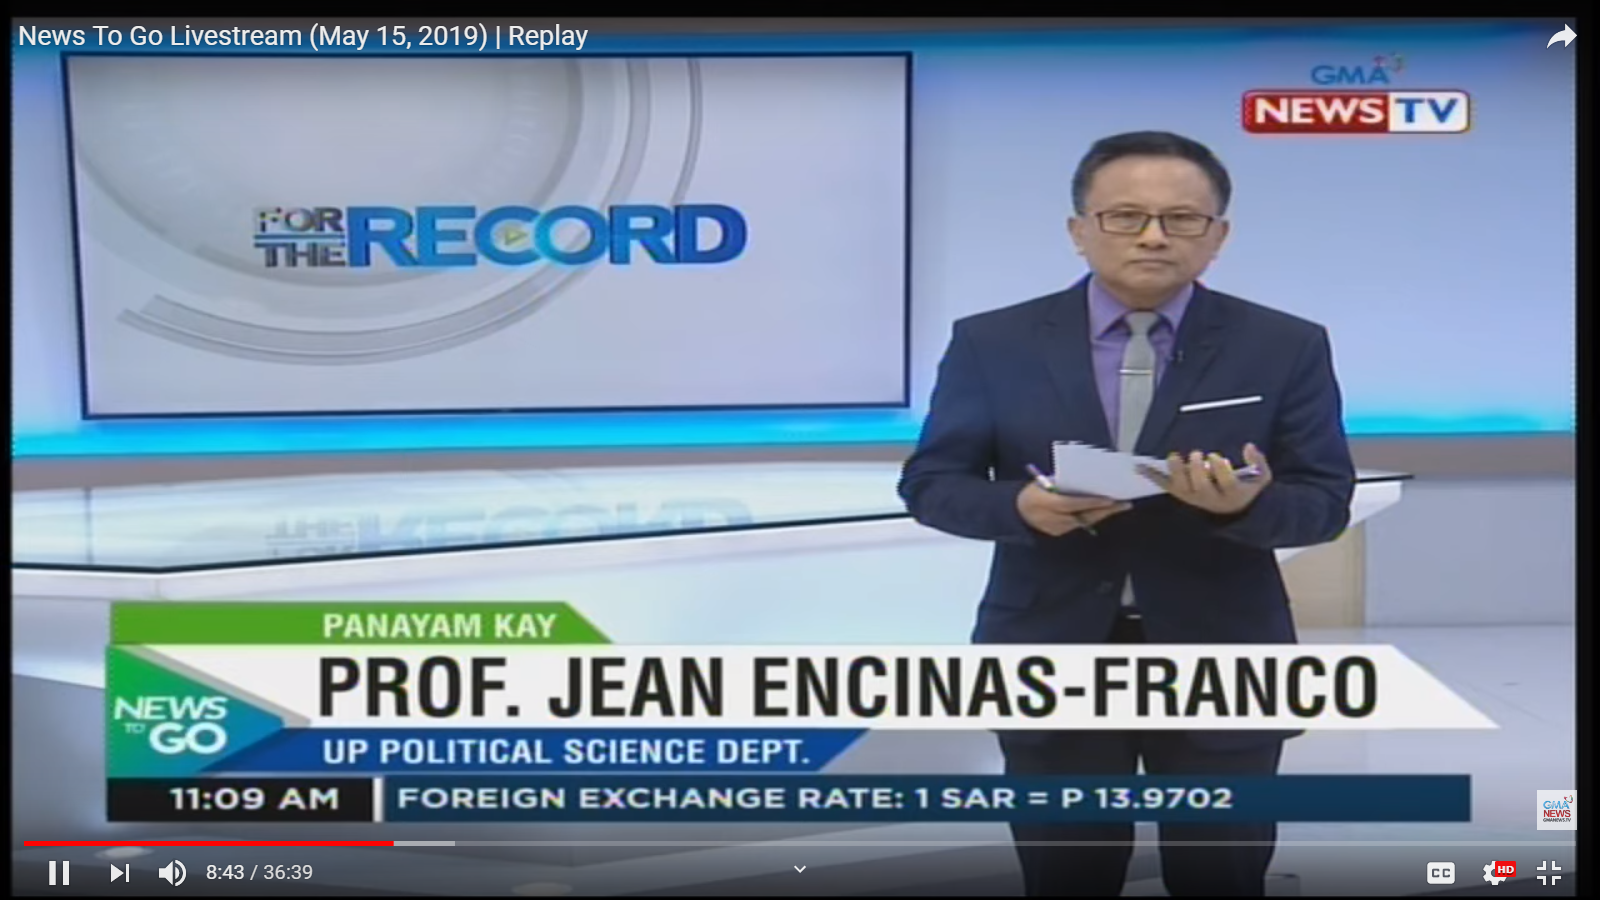 News To Go: Dr. Jean Encinas-Franco